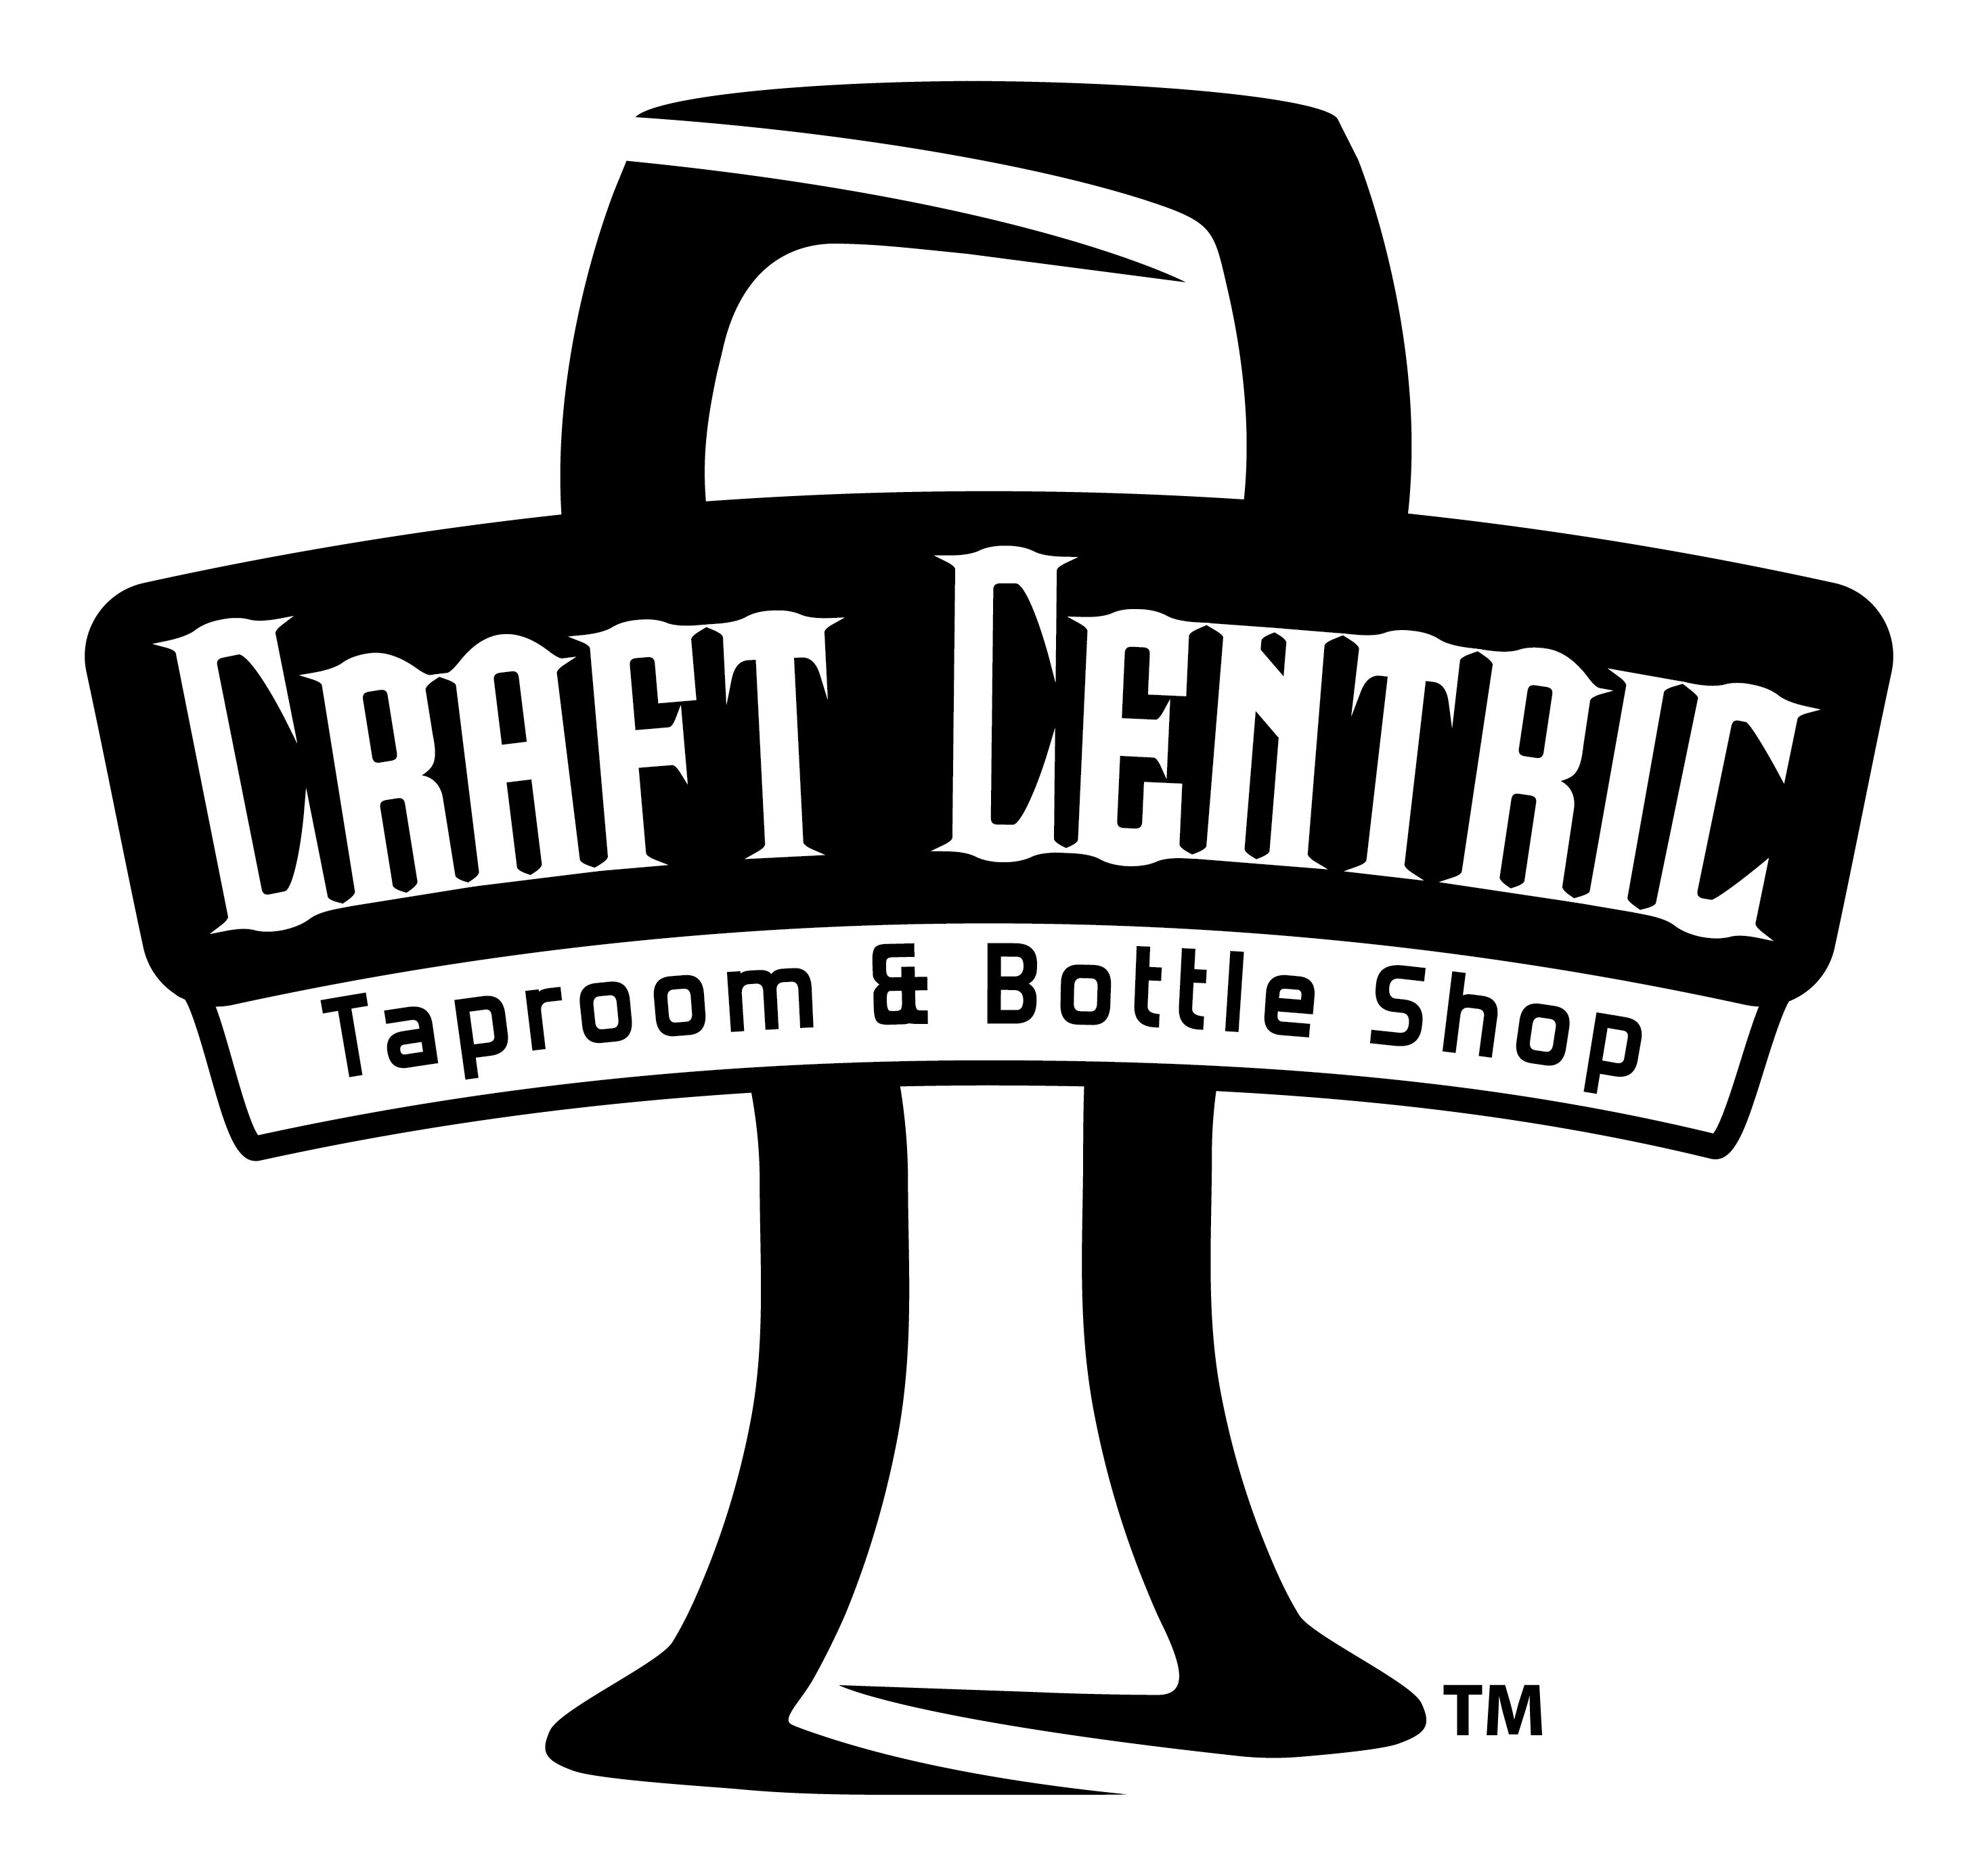 Craft Centric Taproom and Bottle Shop